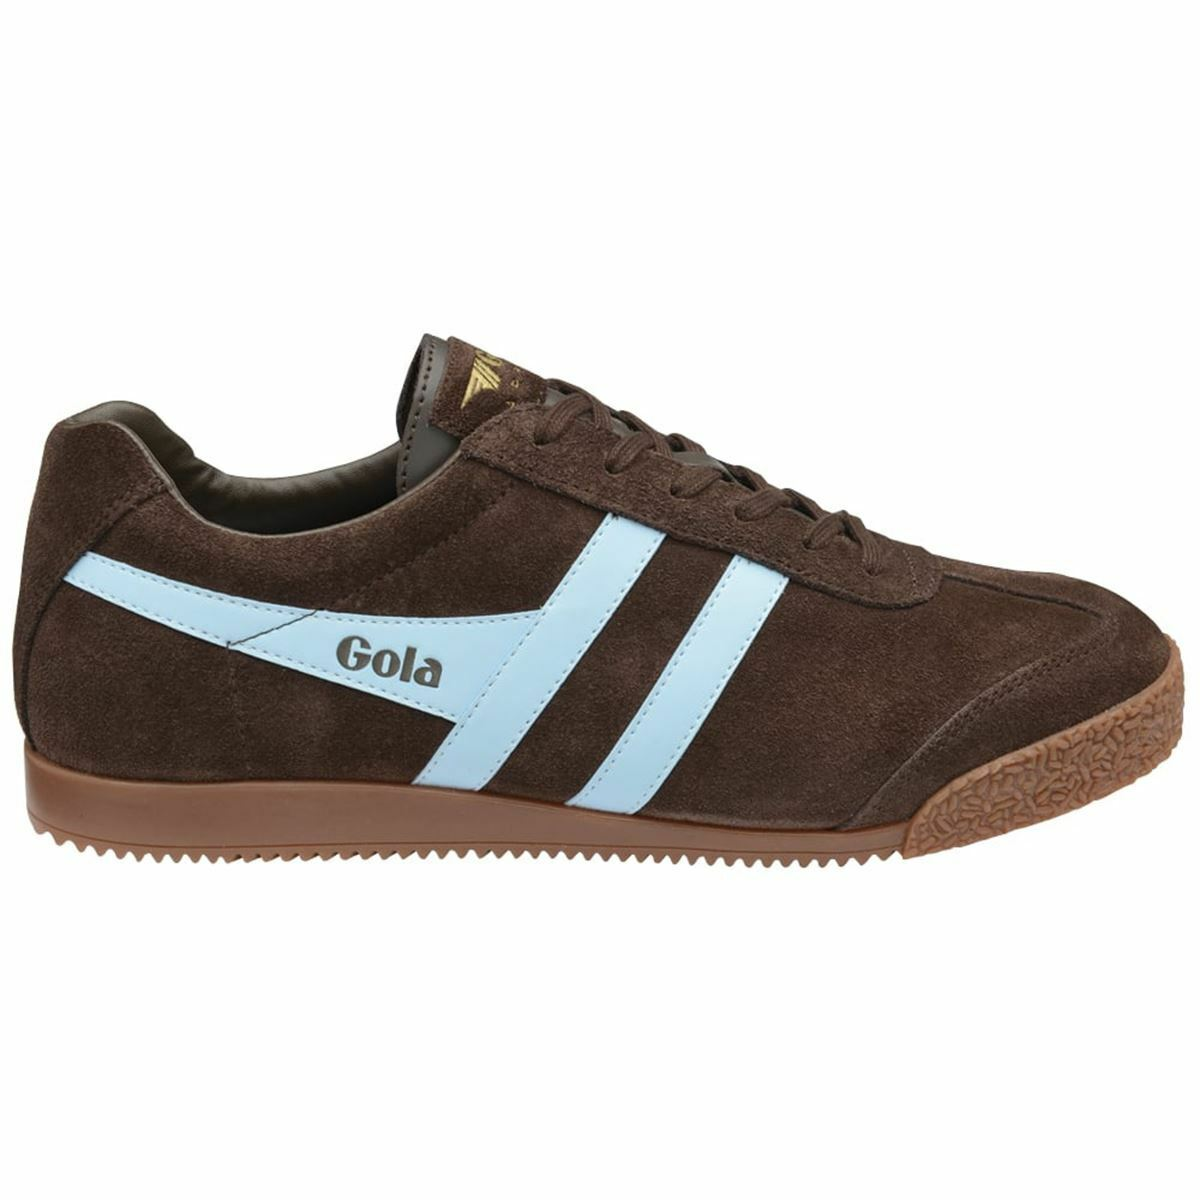 Gola Harrier dark marrón mens Suede Classic low-top retro zapatillas Trainers